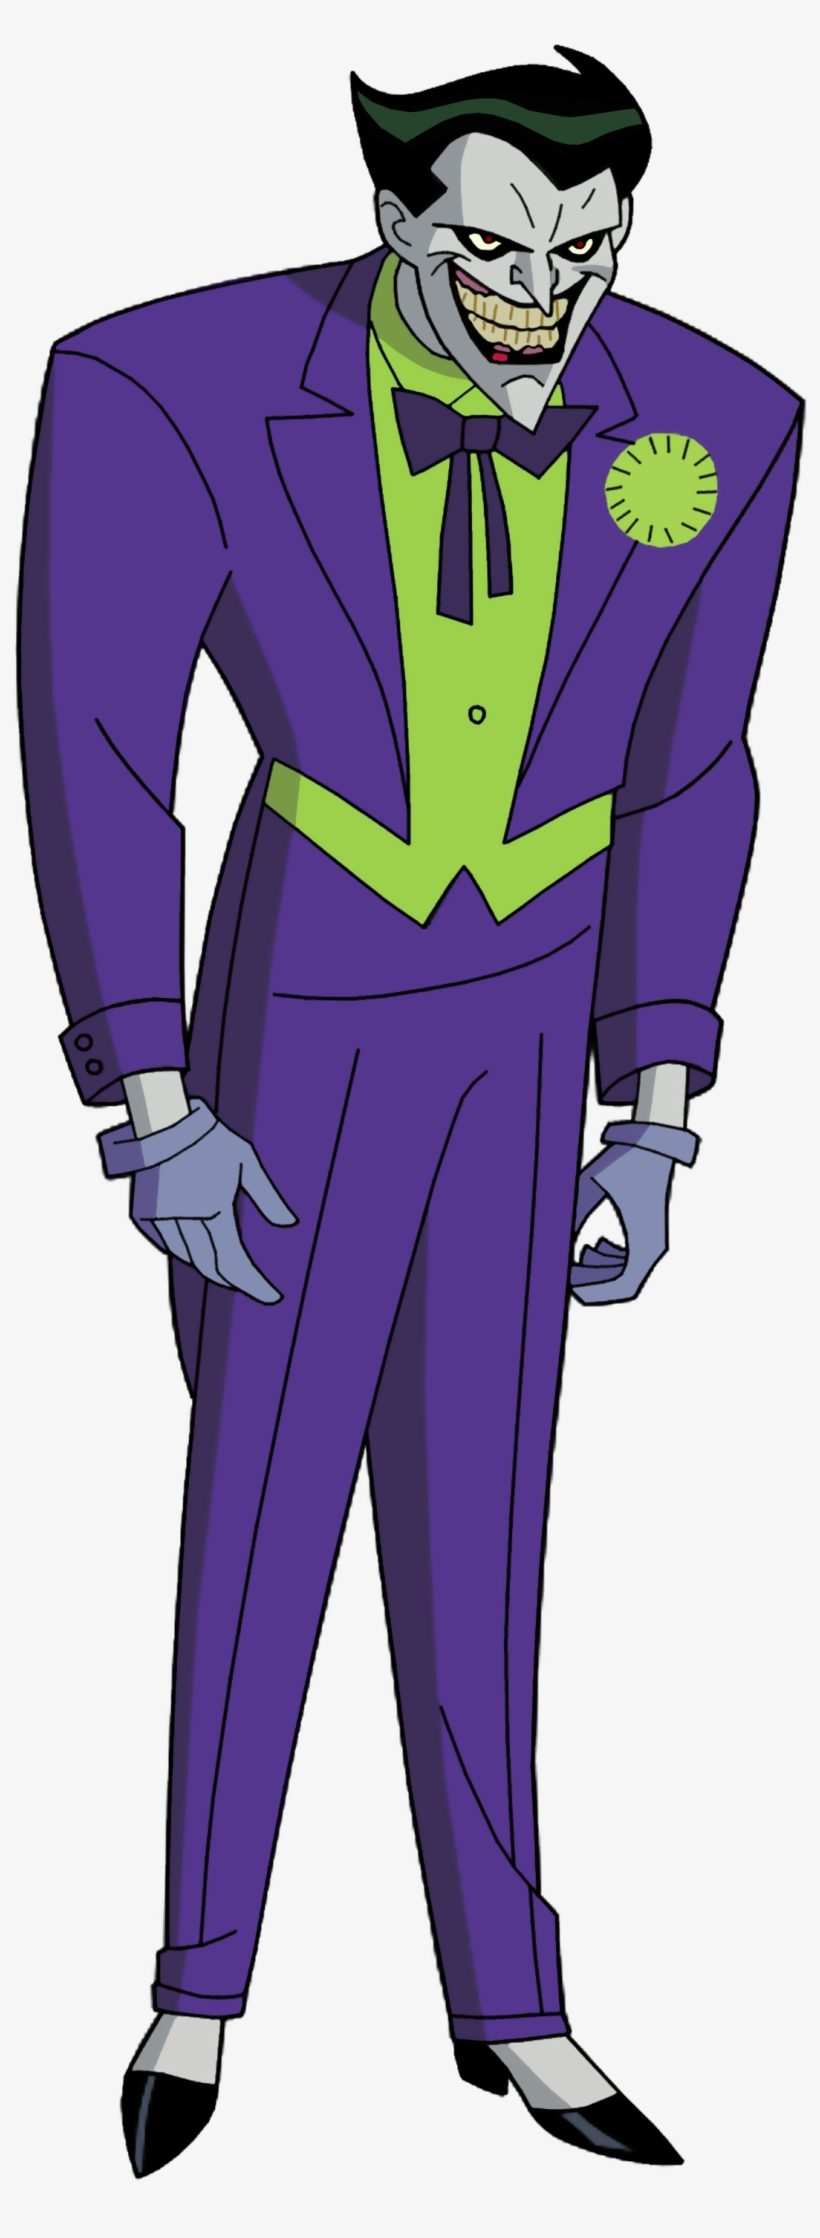 Image Png Villains Wiki Clip Art Library Library - Justice League 2001 Joker, transparent png #568433